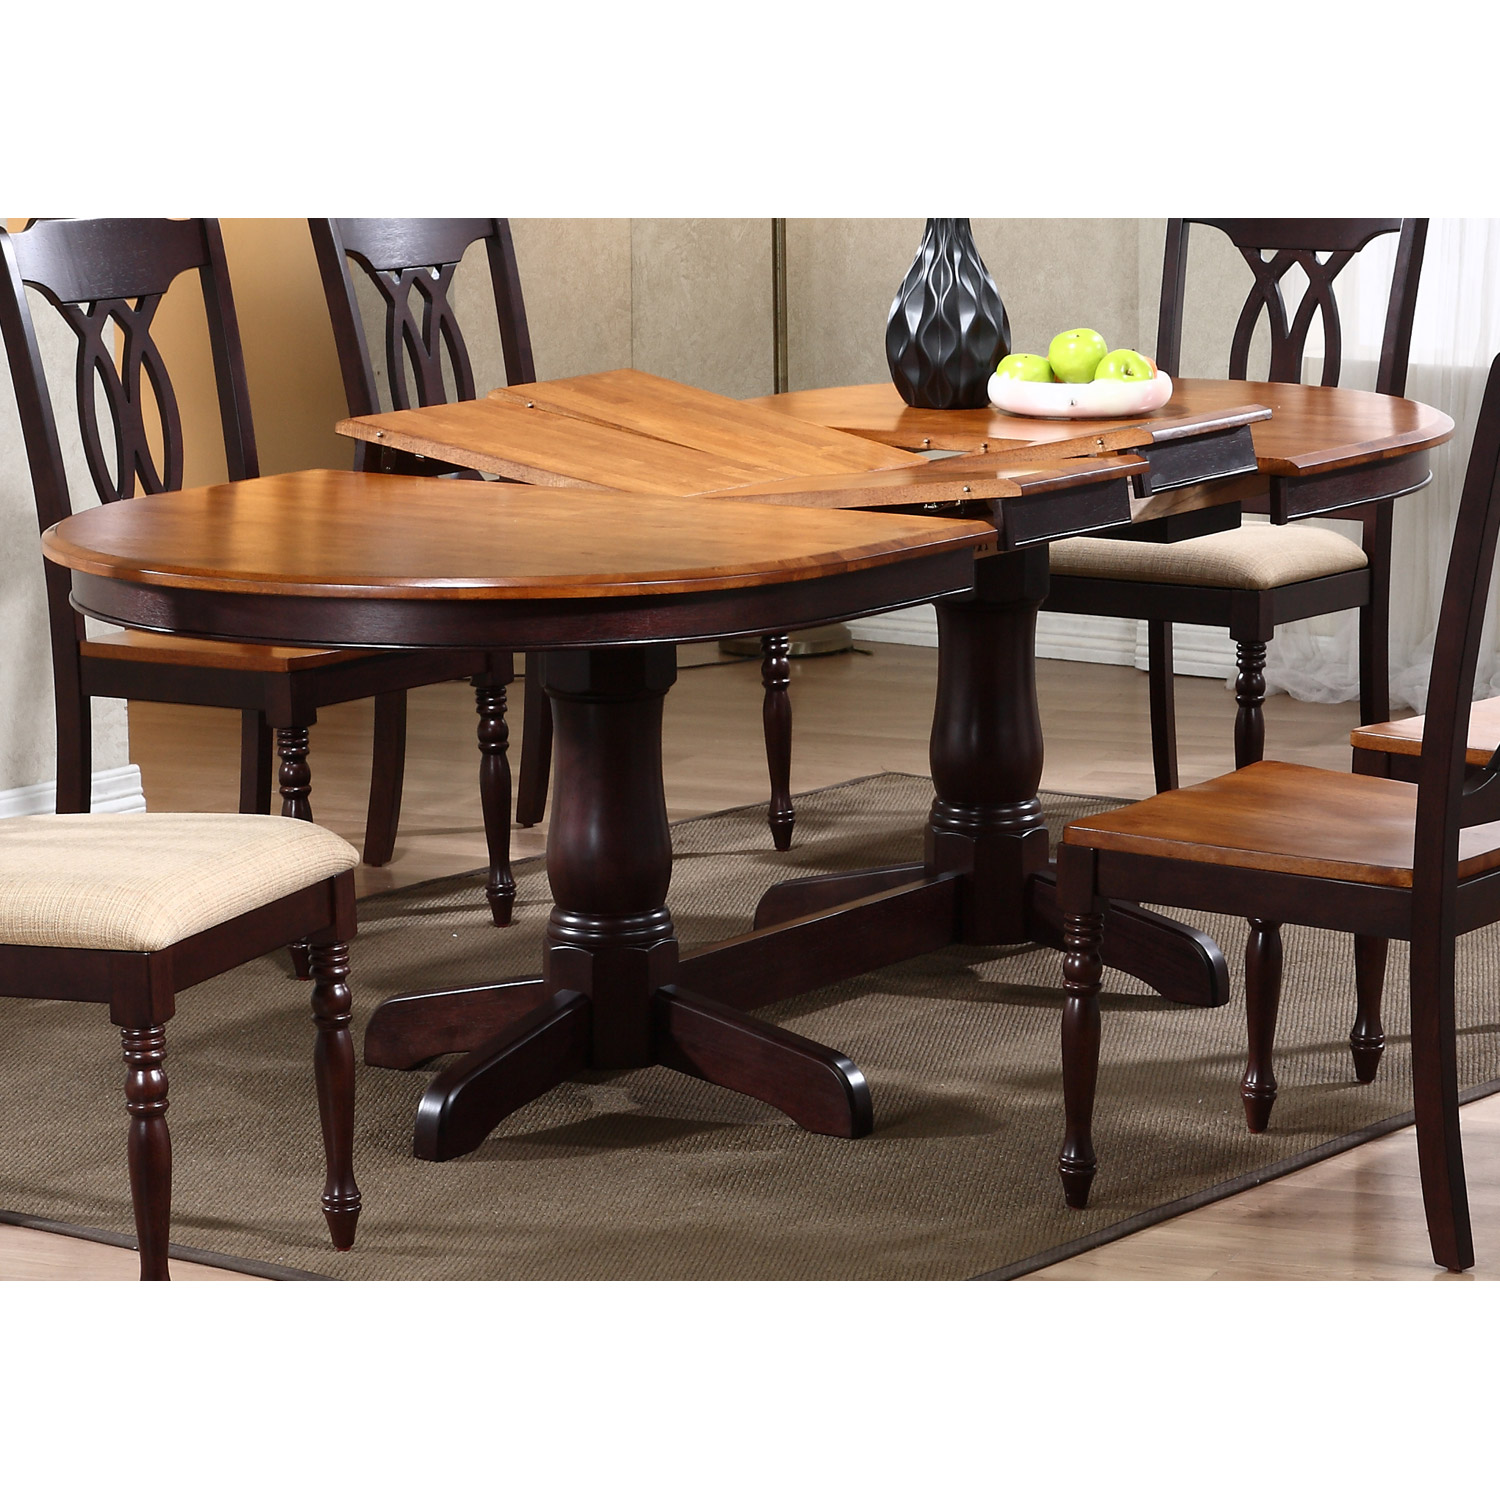 Gatsby Oval Dining Table   Double Butterfly Leaf, Whiskey U0026 Mocha    ICON OV90 ...